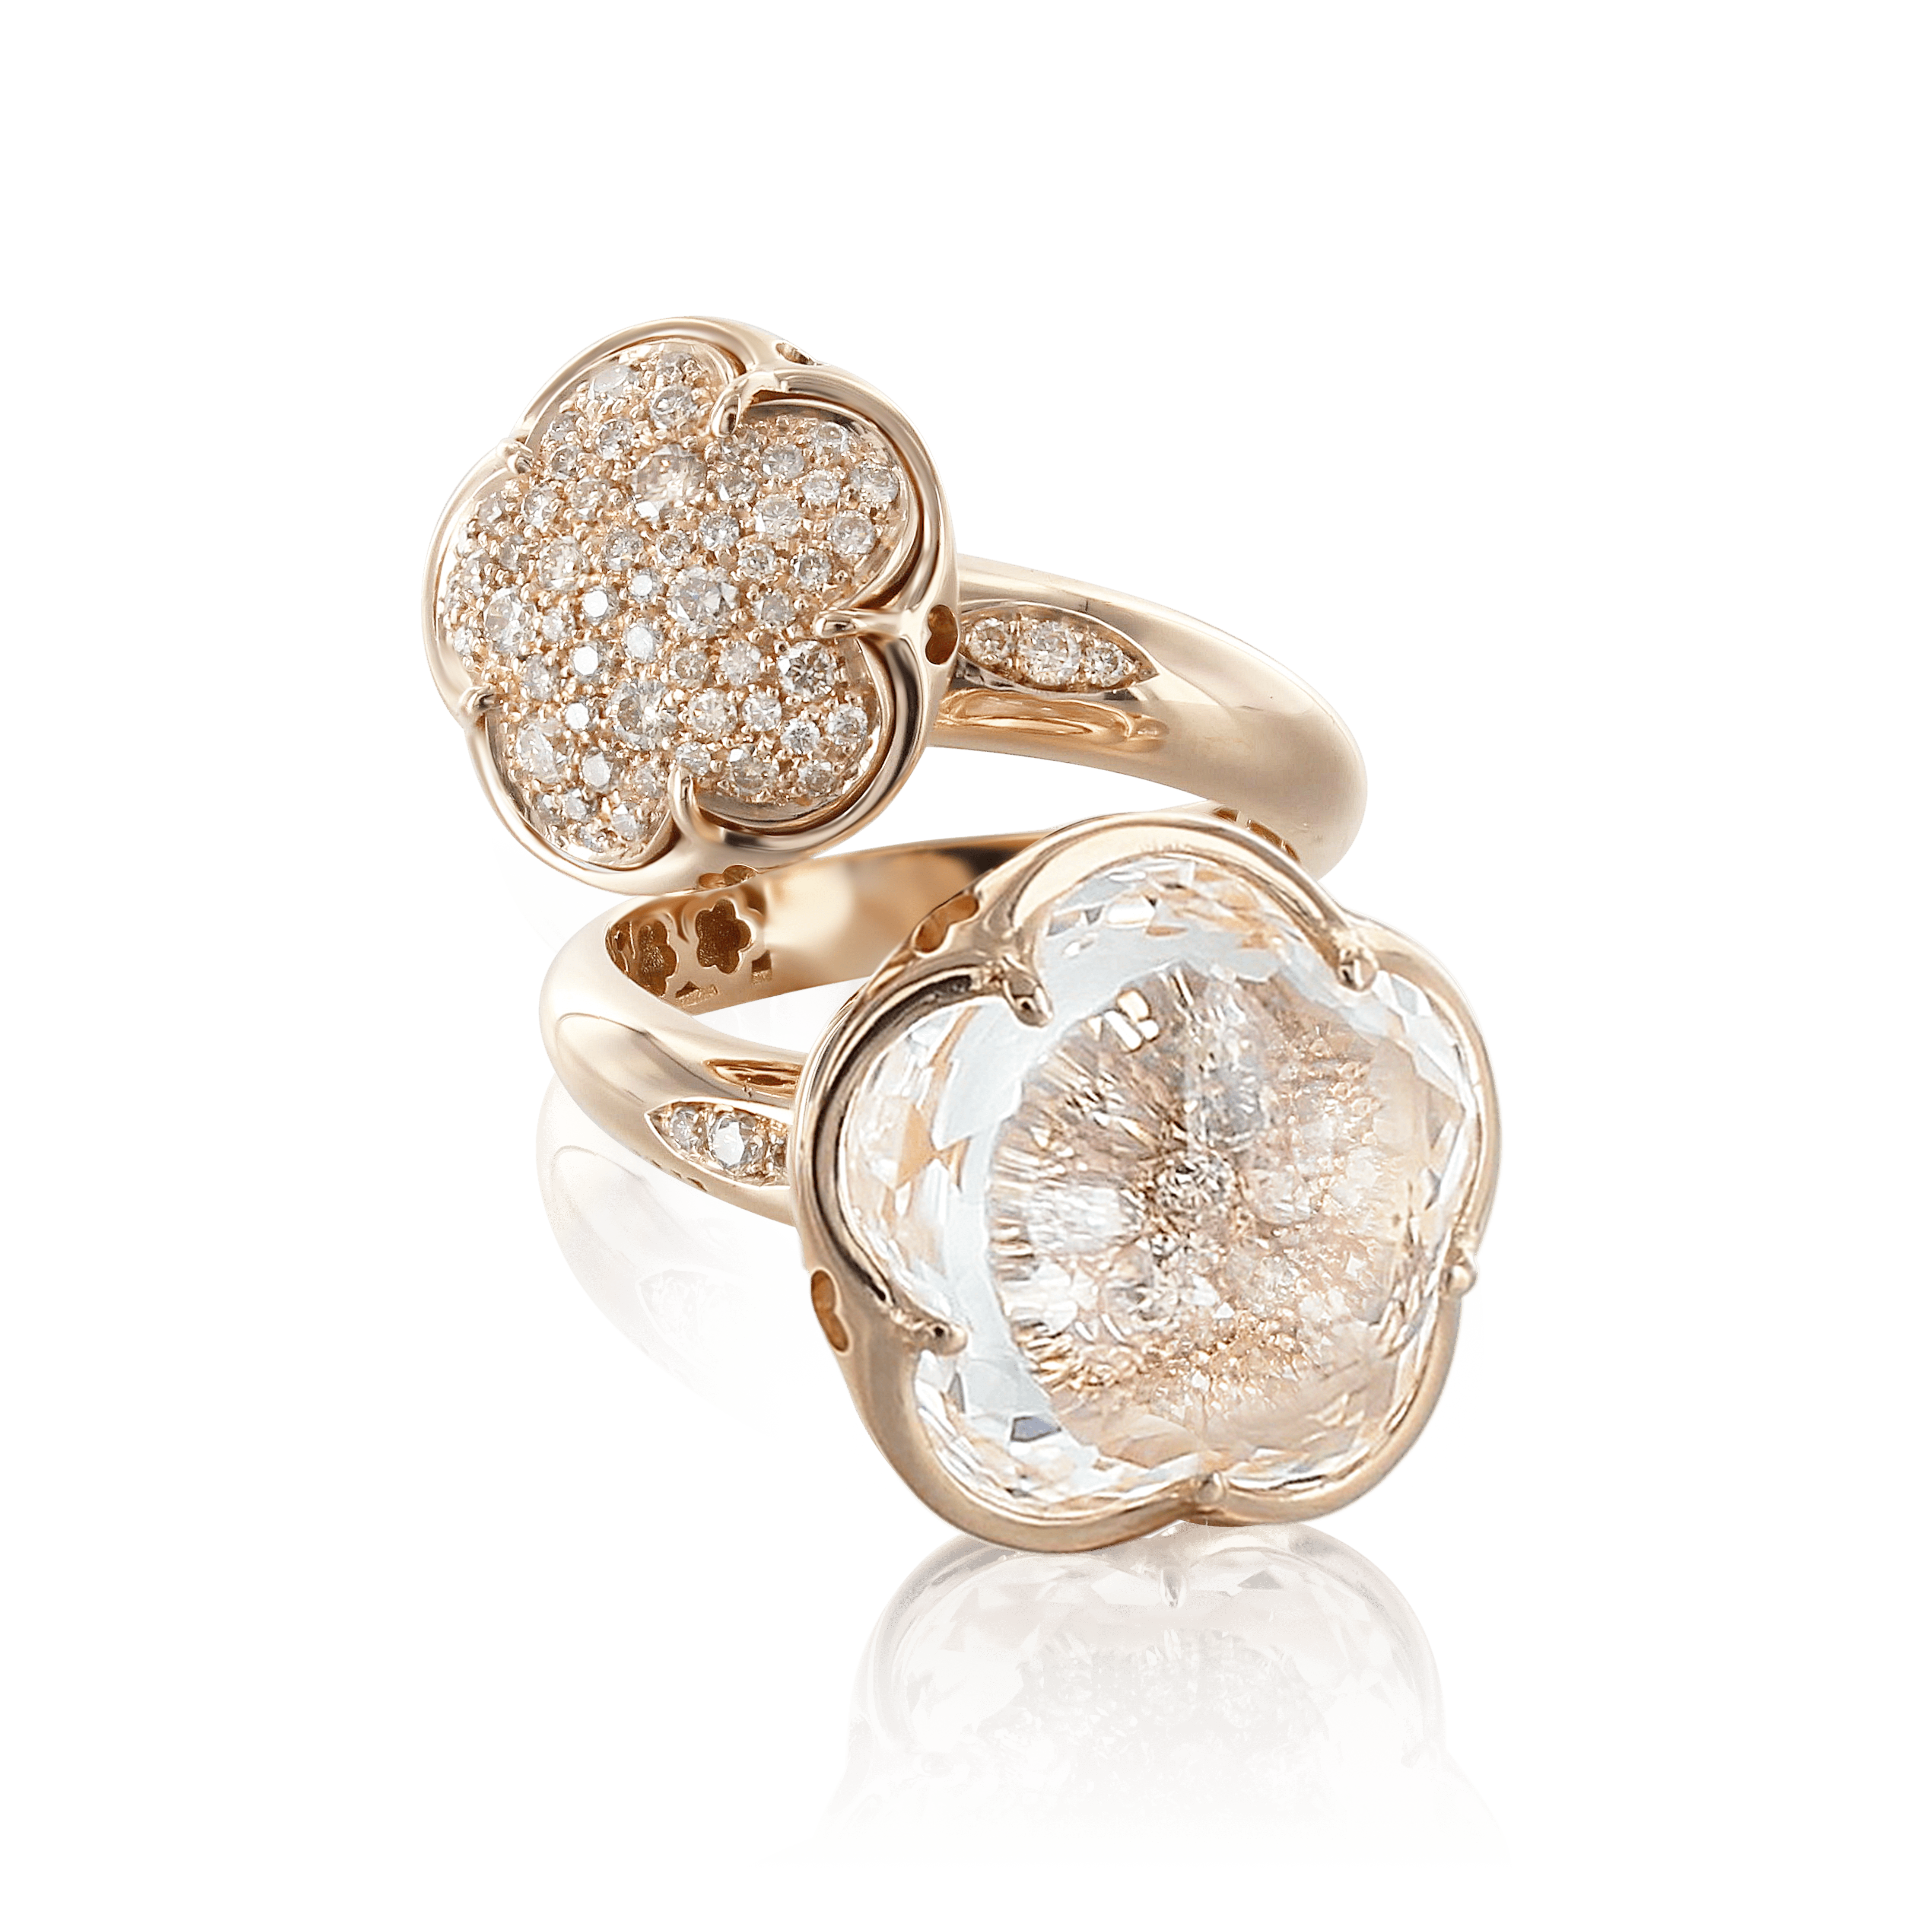 18k Rose Gold Bon Ton Ring with Rock Crystal, White and Champagne Diamonds